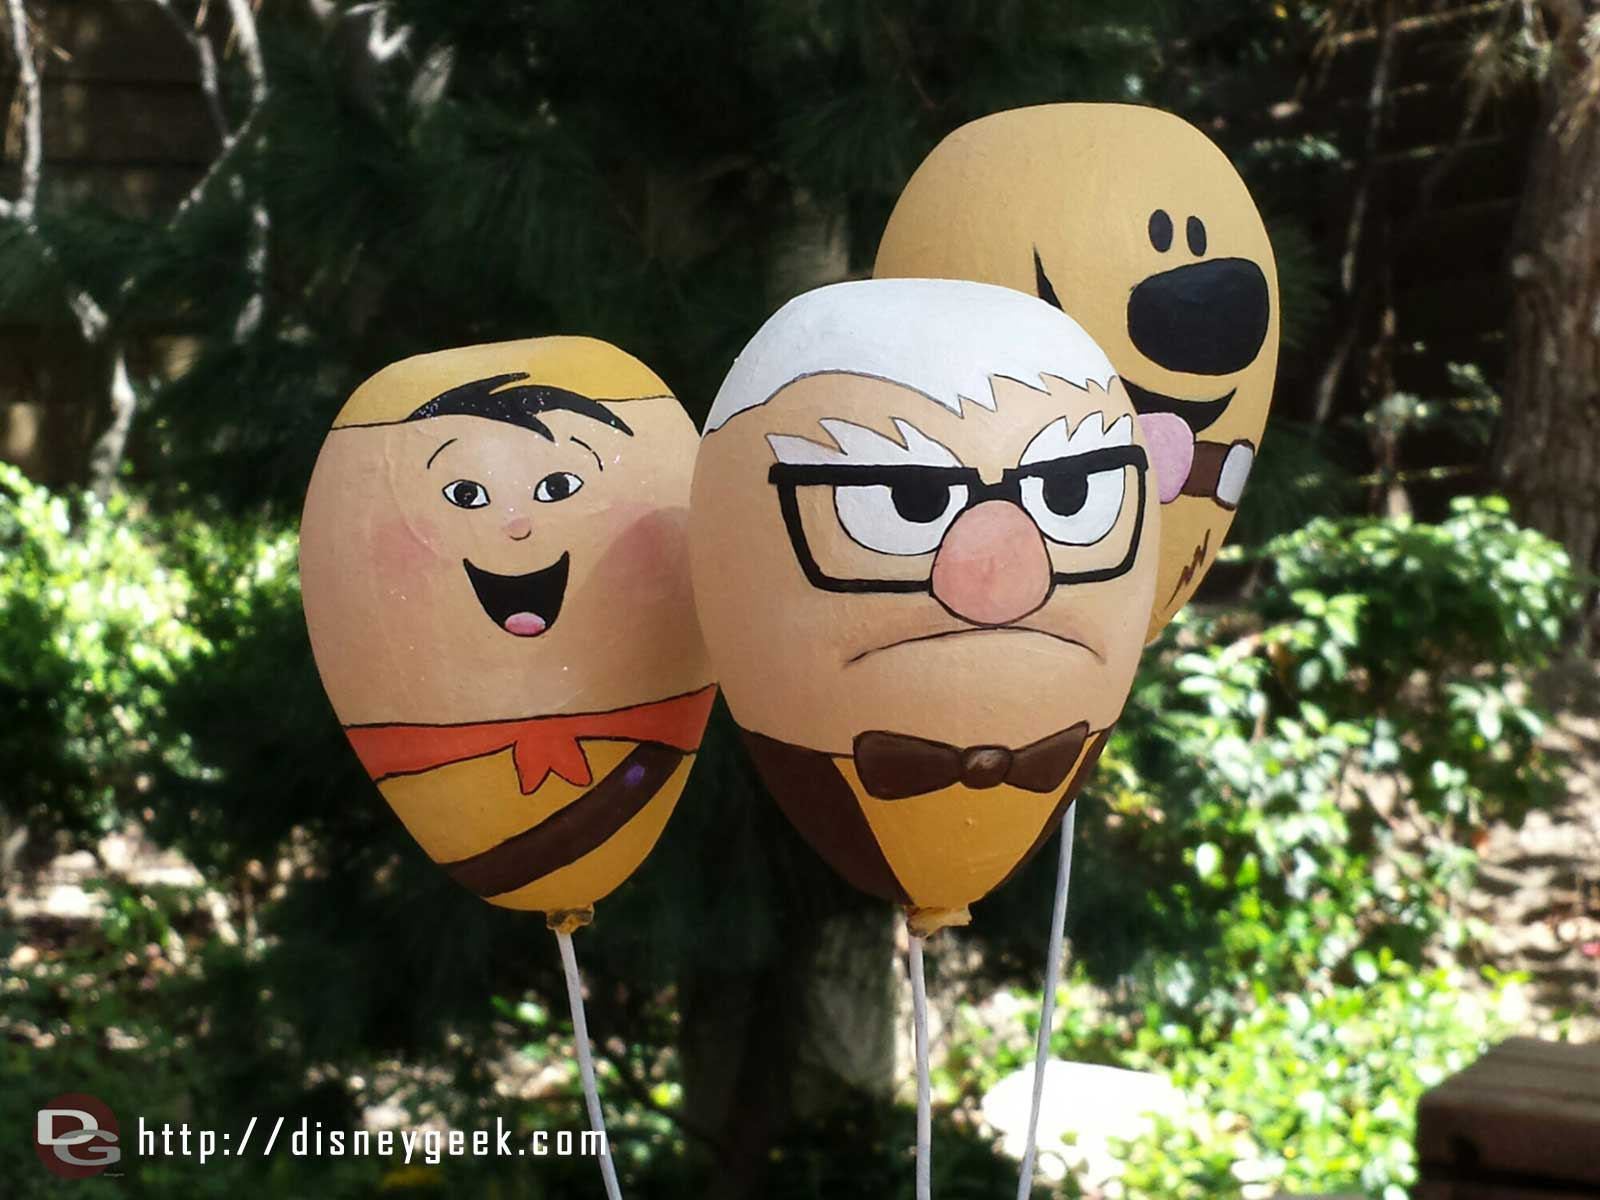 Egg painting is part of the springtime roundup again. Here is the Up gang #Disneyland